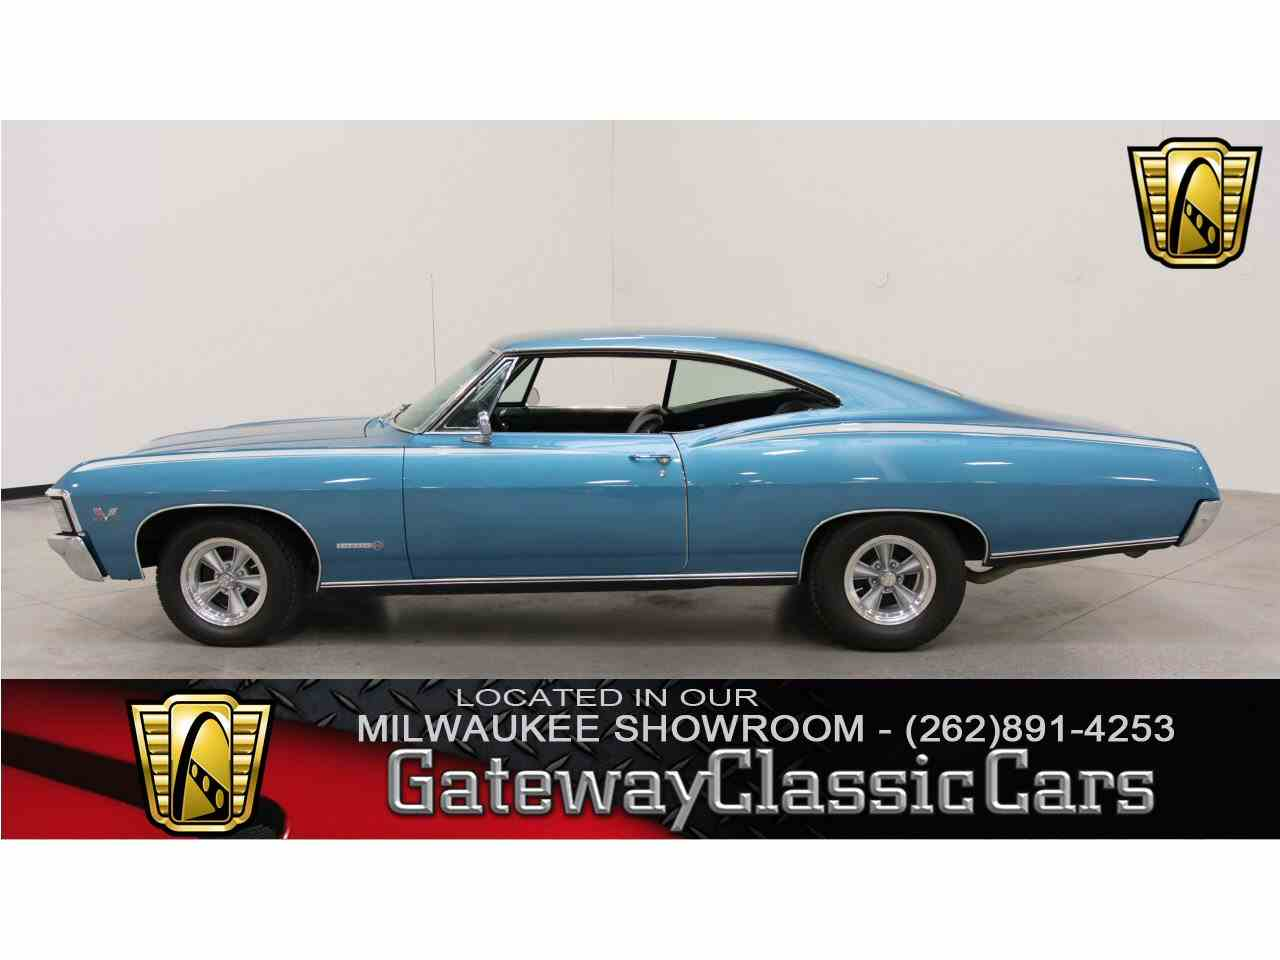 1967 Chevrolet Impala For Sale Classiccars Com Cc 951262